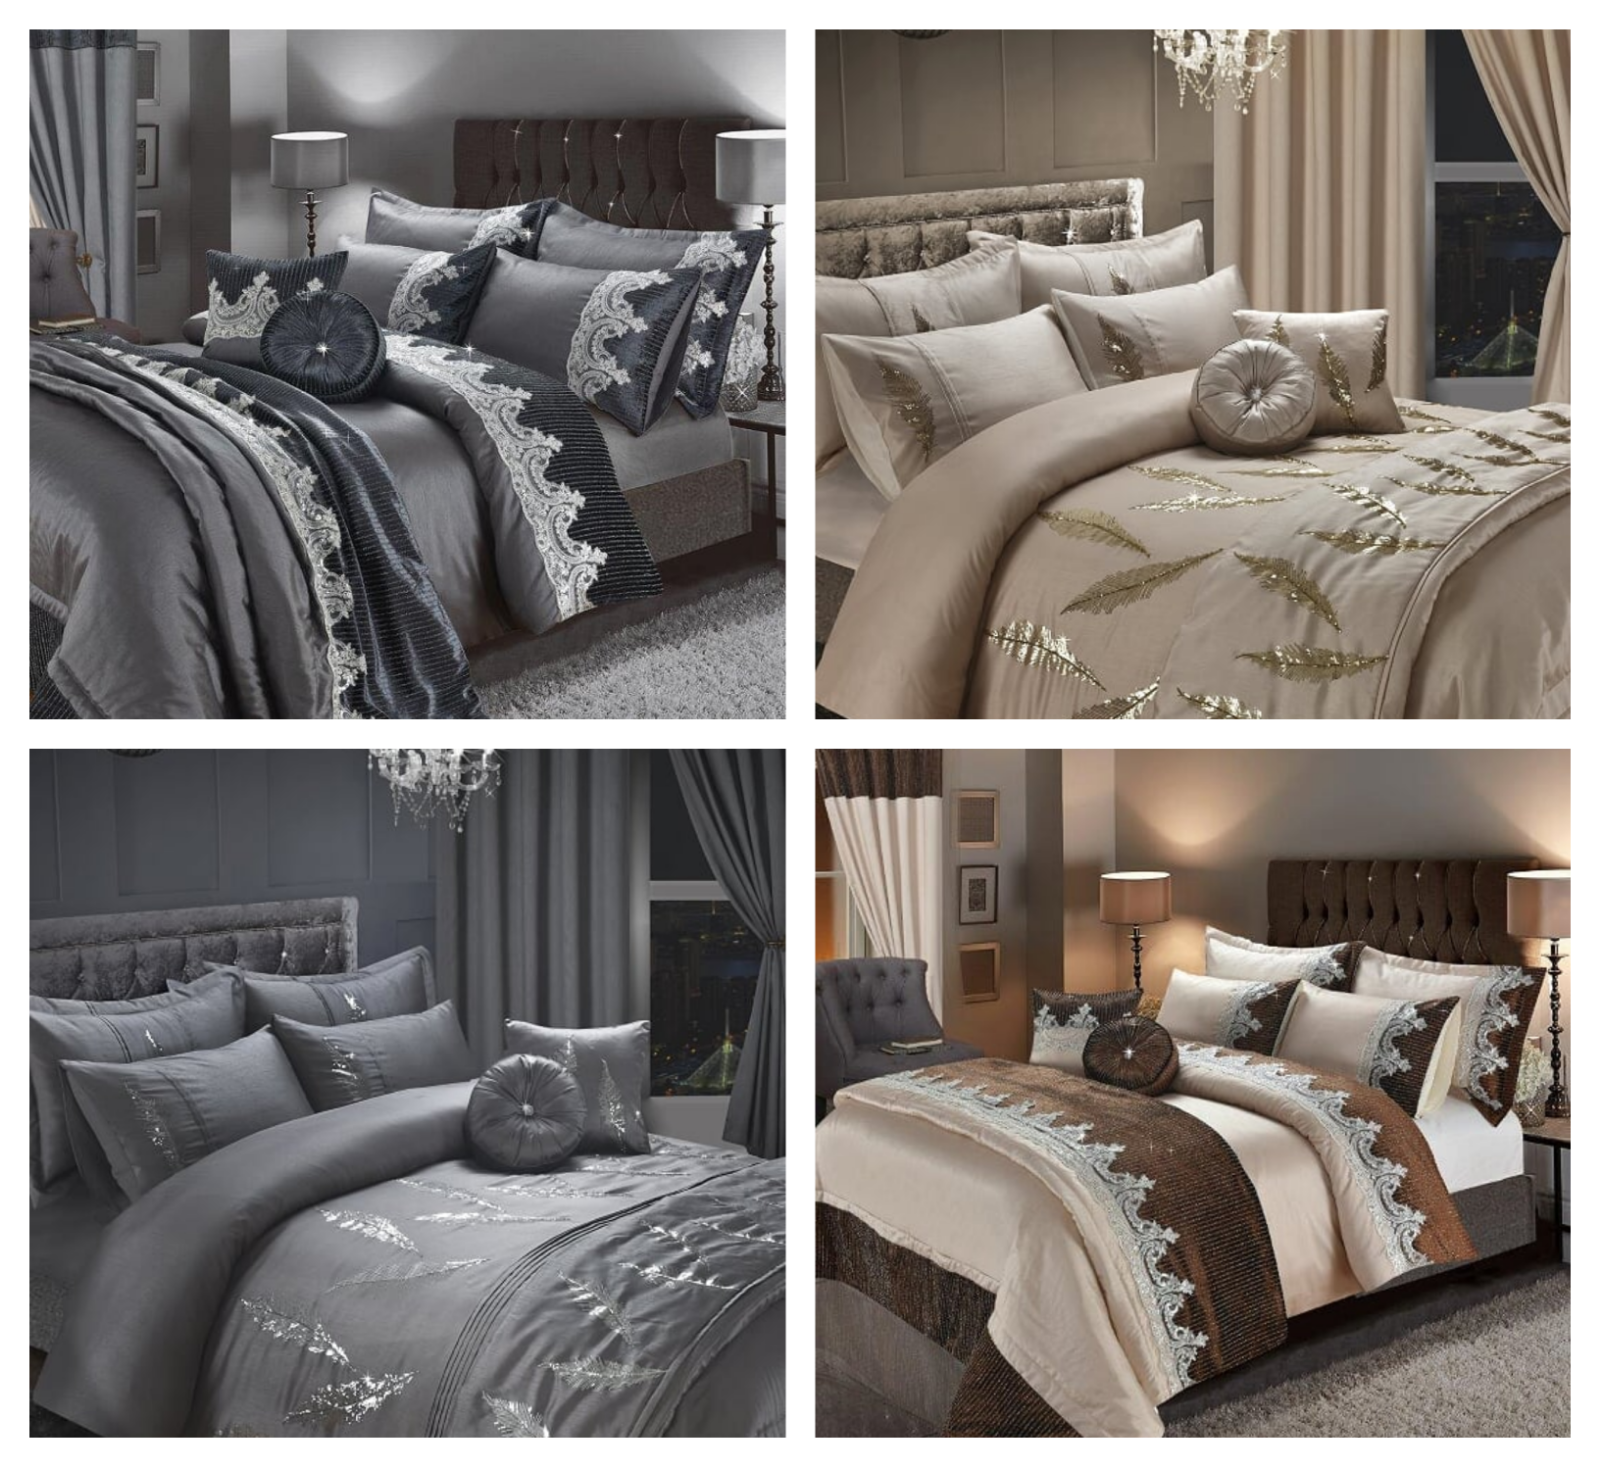 LUXURY FAYE ALESSIA EMBROIDERY DUVET SET CUSHIONS CURTAINS BED THROW+SHAMS